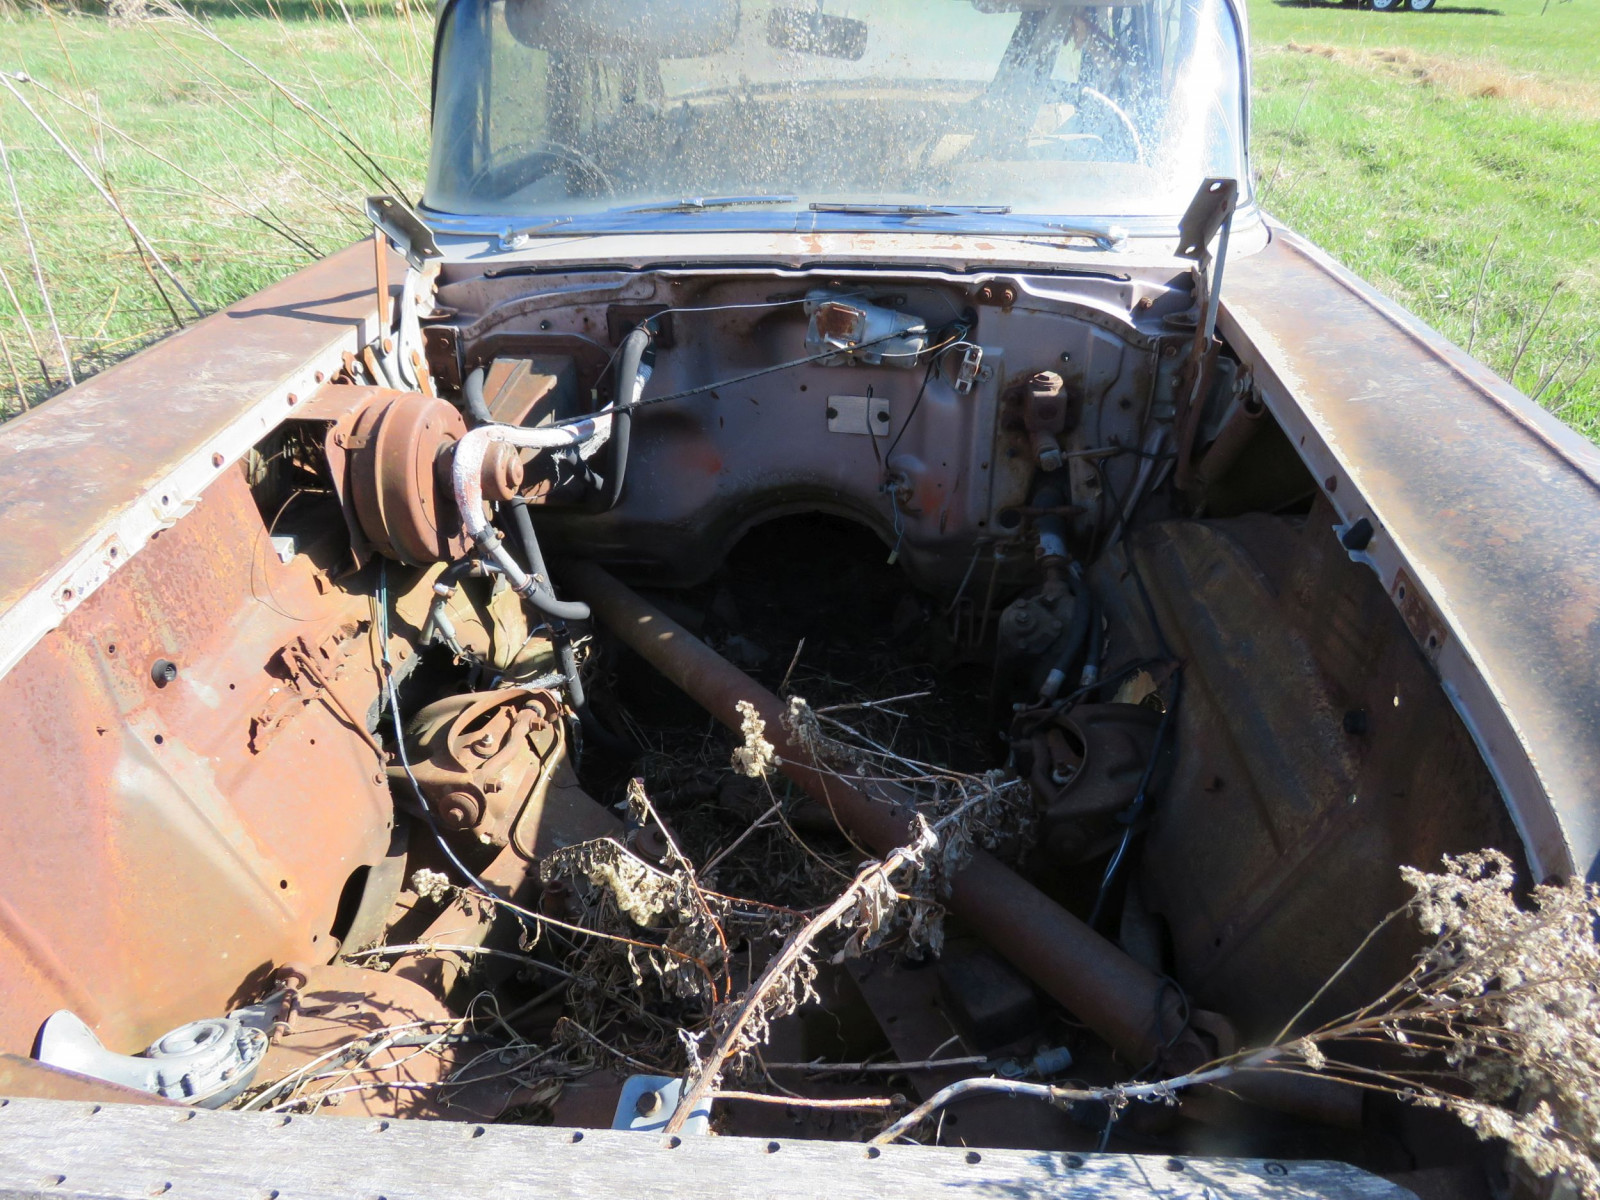 1957 Chevrolet 4dr Sedan parts only - Image 2